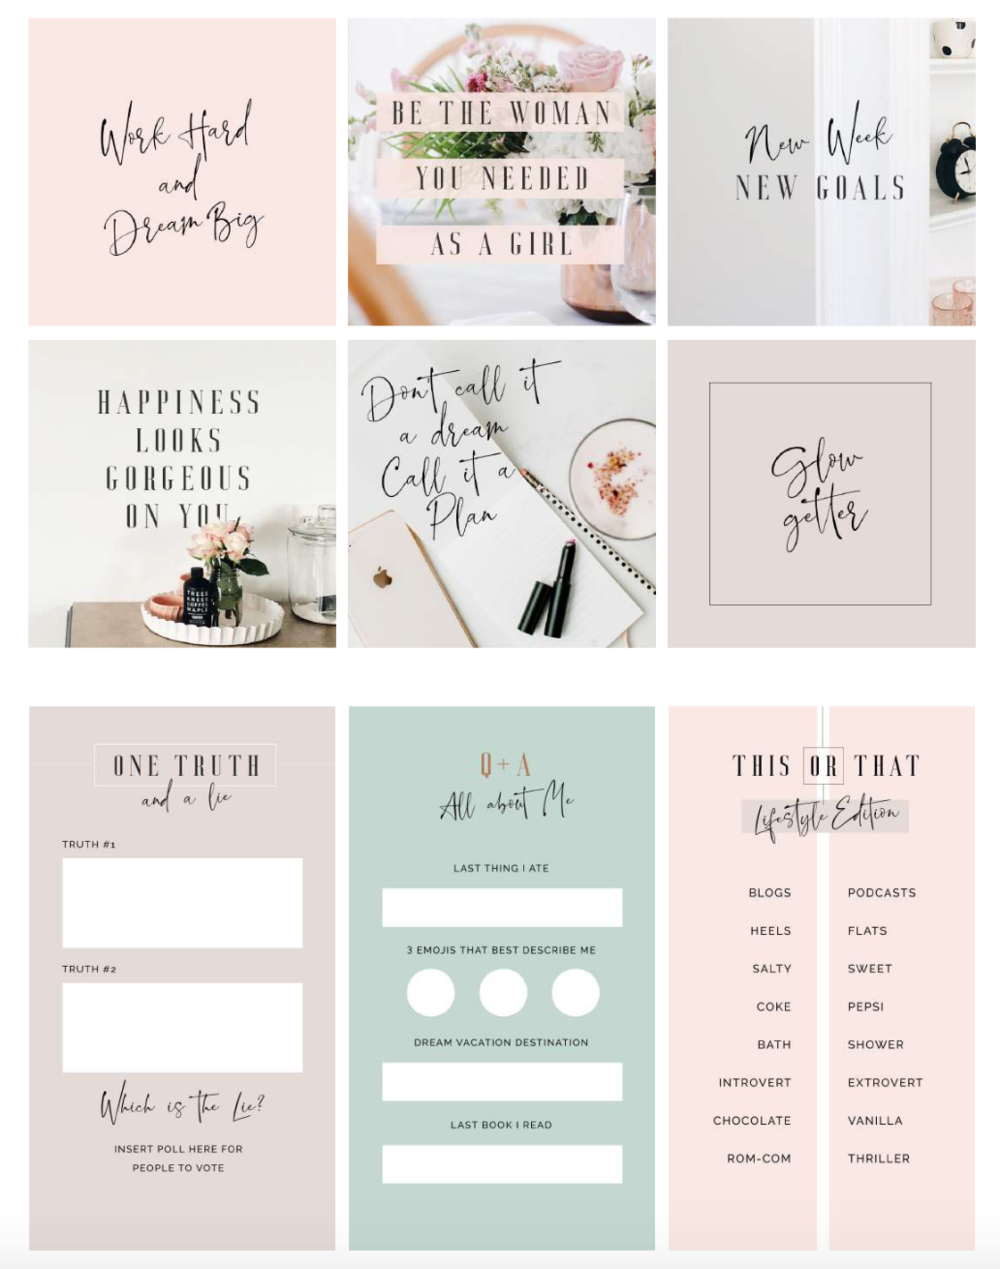 2. Download the Quarterly Social Media Graphics - You are going to love this quarter's social media graphics bundle!